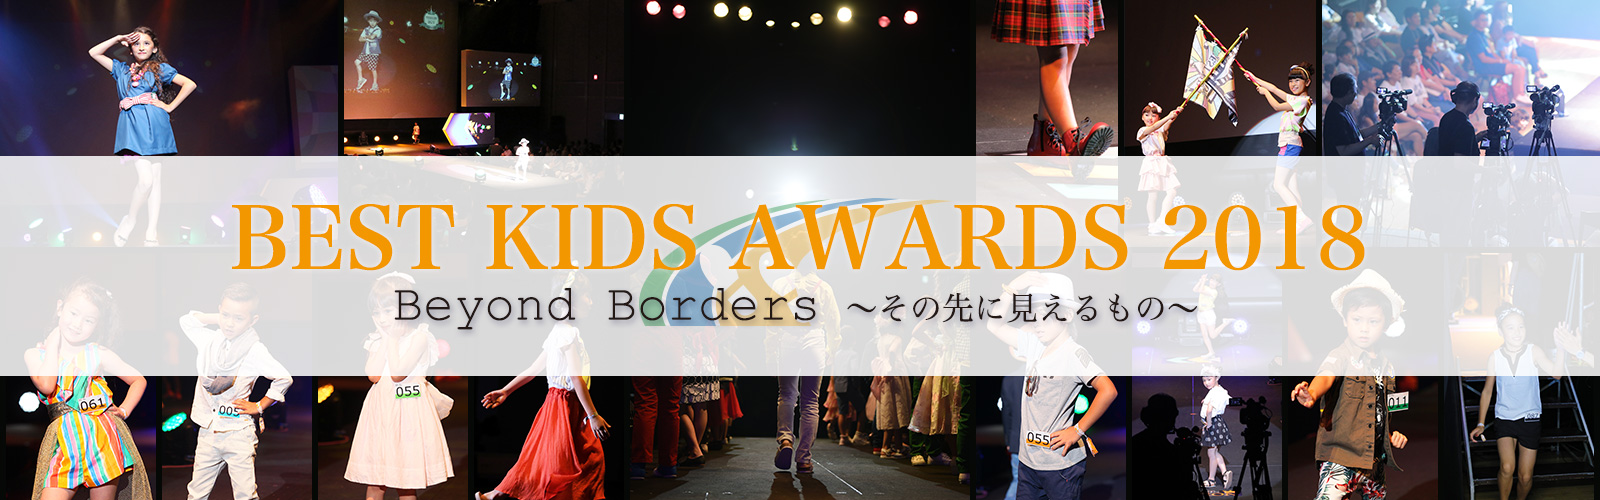 BEST KIDS AWARDS 2018